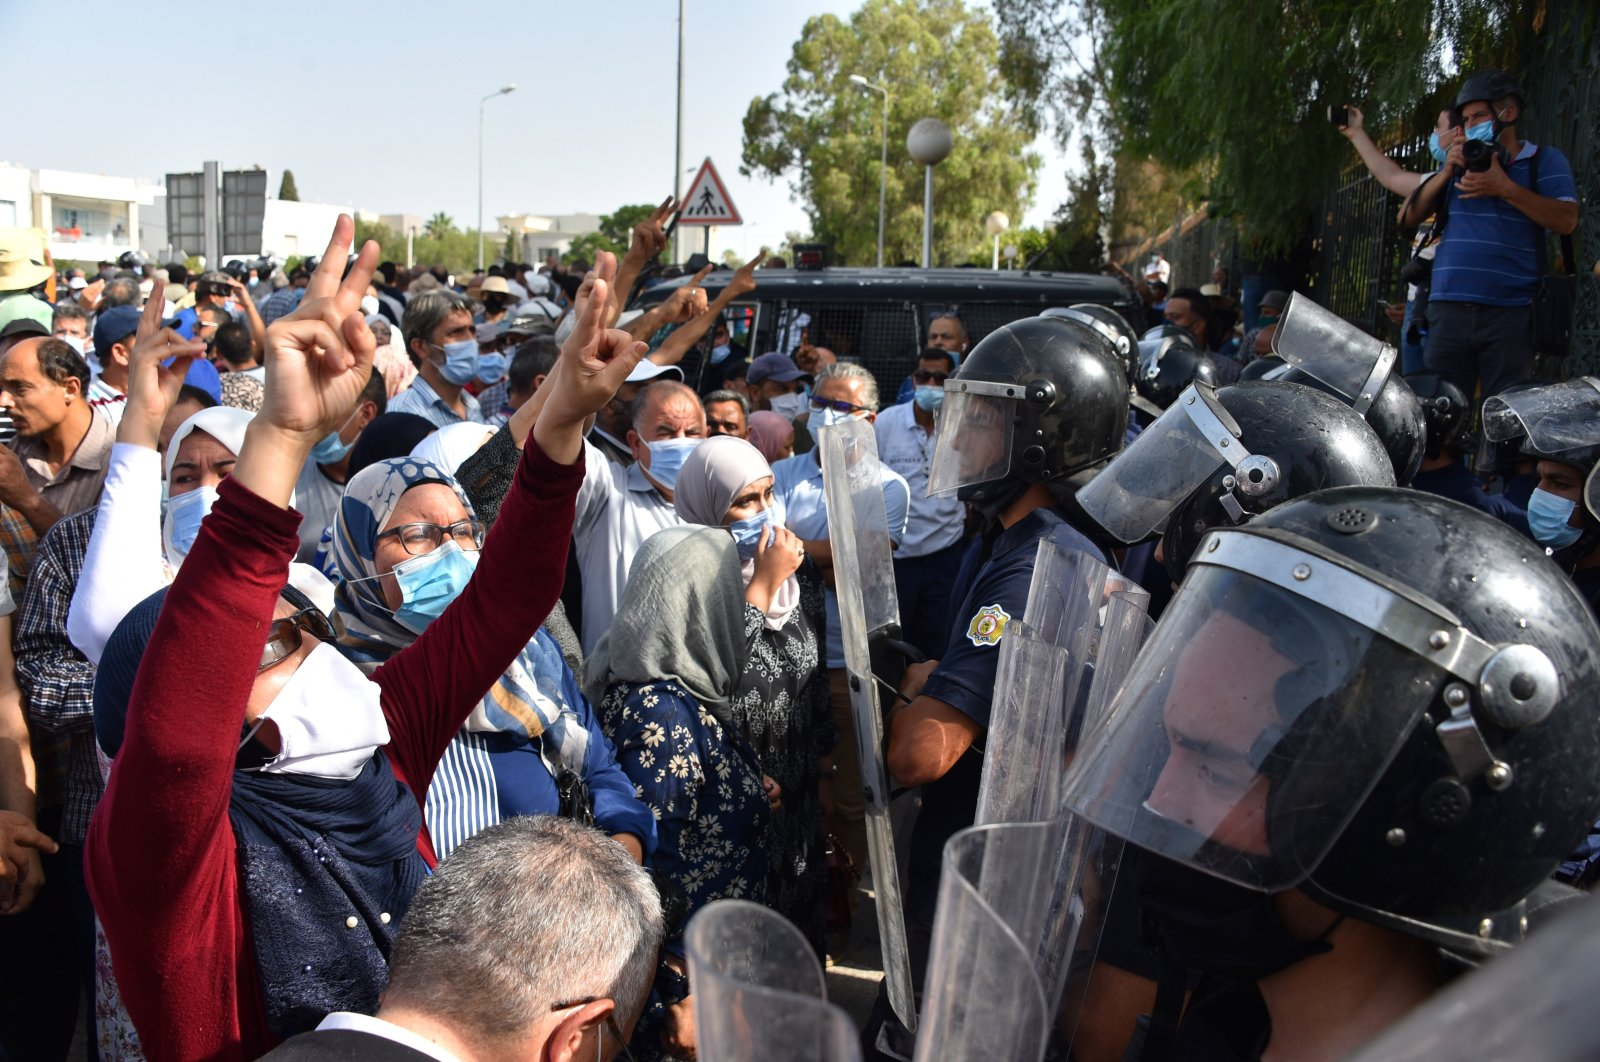 Supporters and opponents of coup chant slogans in front of parliament building during the demonstration, in capital Tunis, Tunisia, on July 26, 2021. (Getty Images Photo)